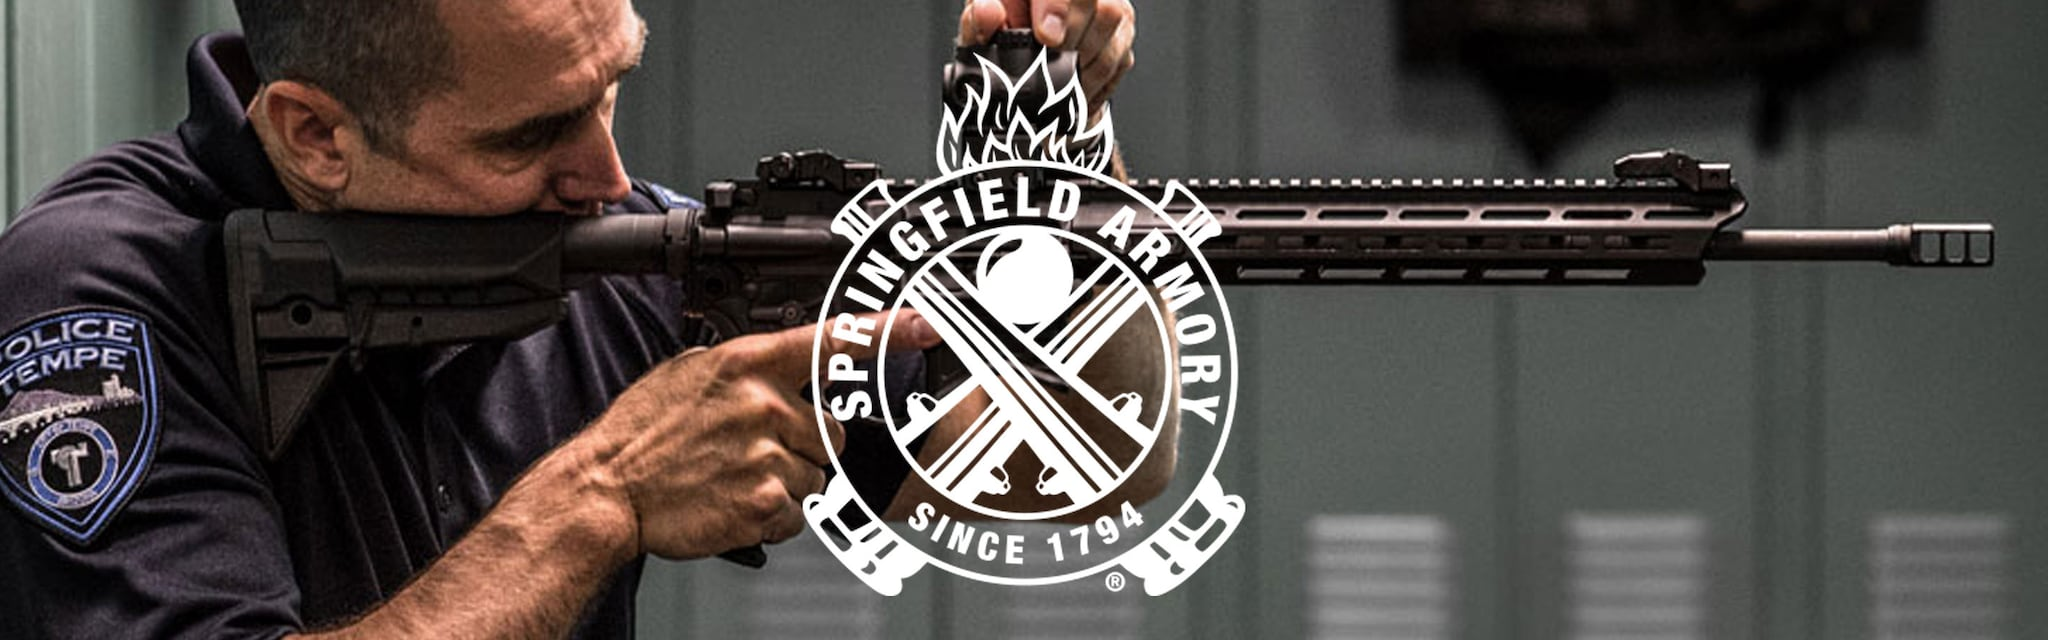 Springfield Armory Brand Banner